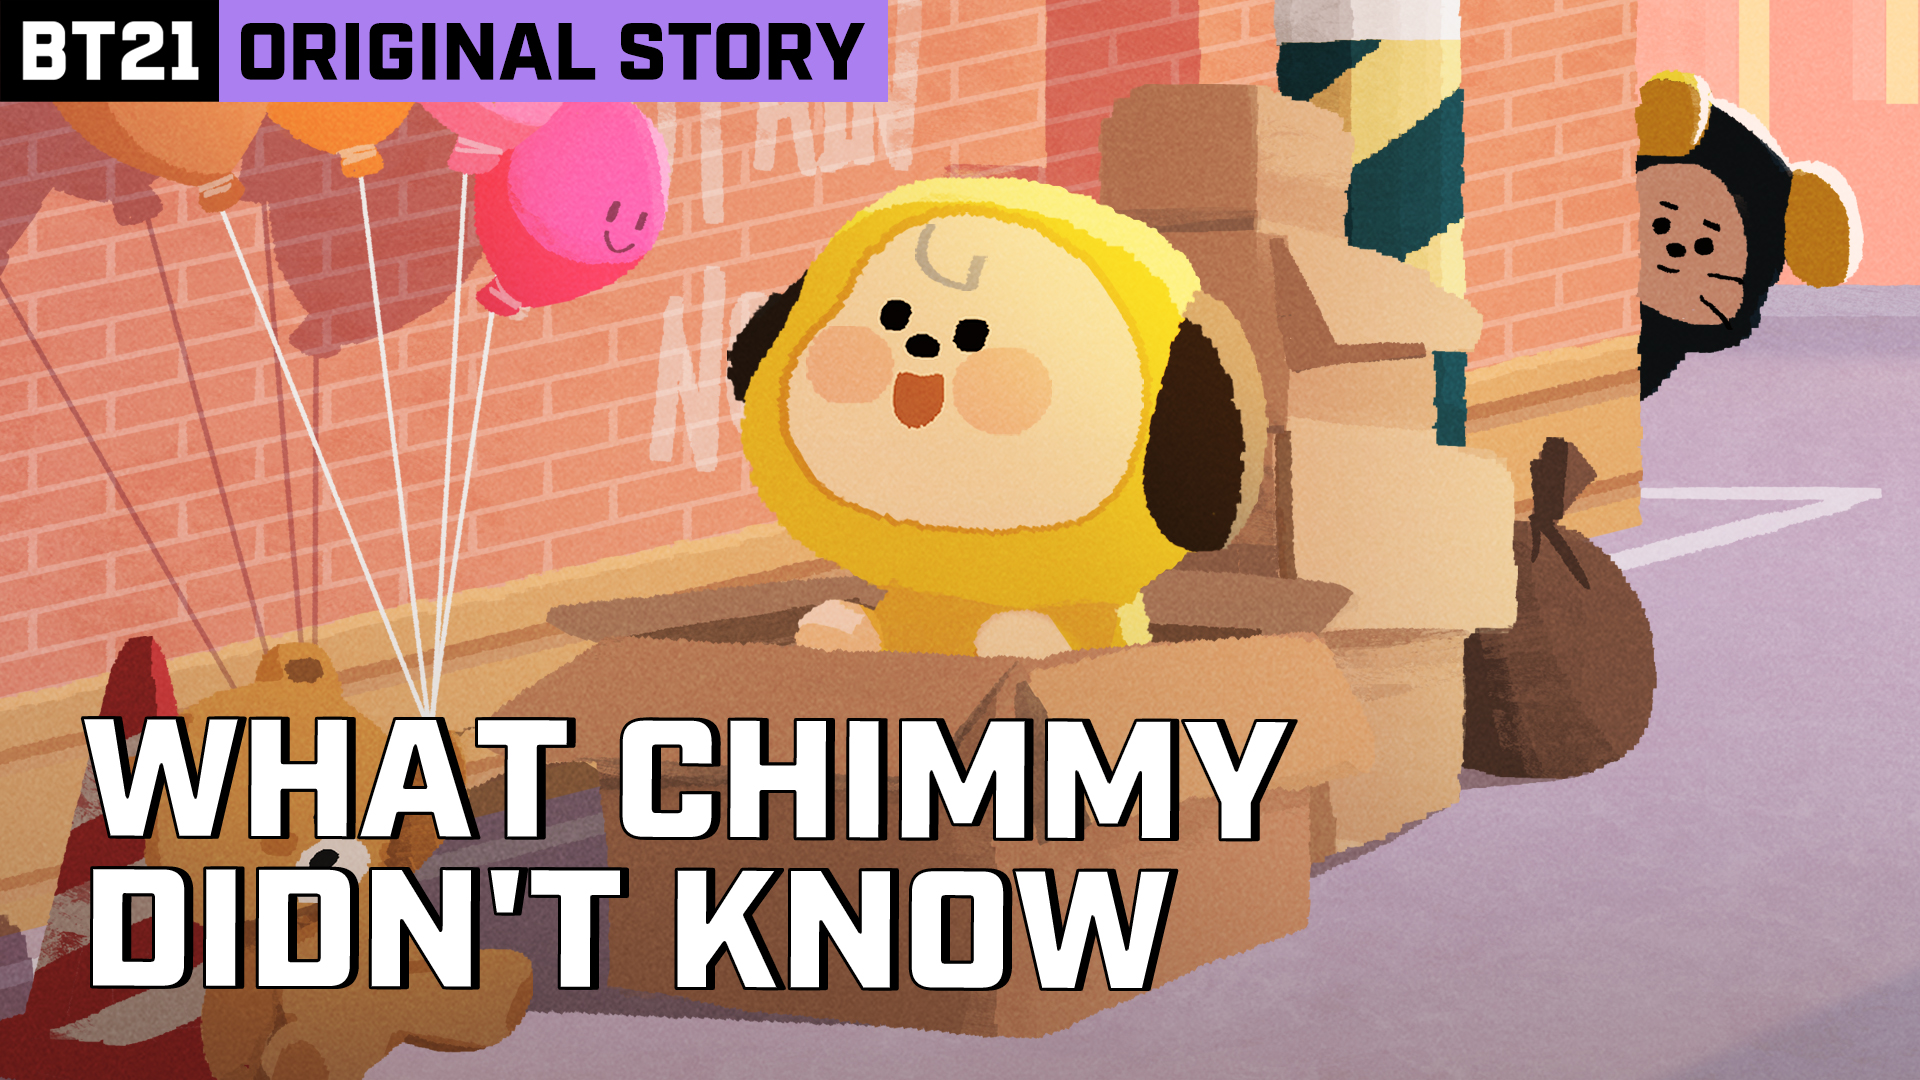 BT21 ORIGINAL STORY EP.01 - CHIMMY&CHIEF